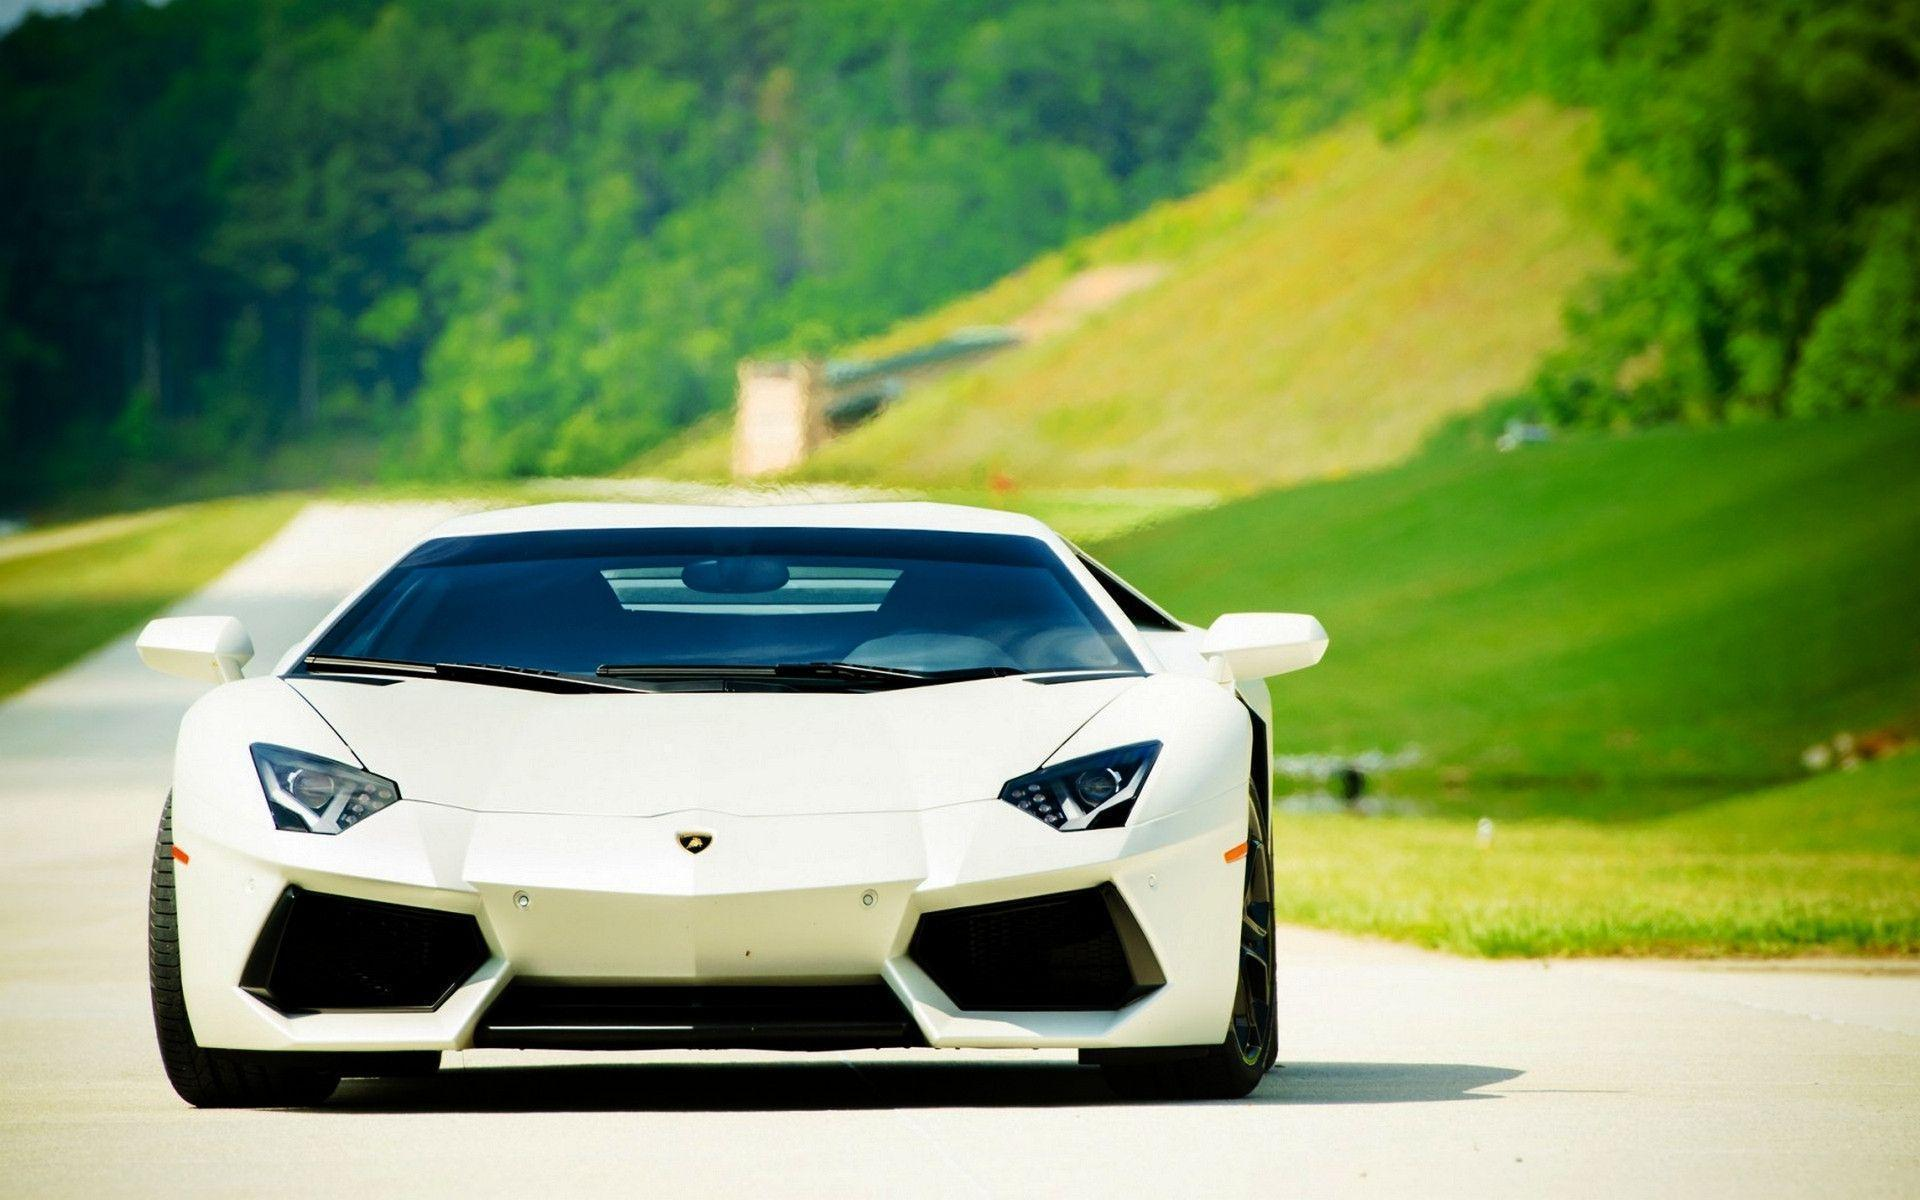 Lamborghini HD Wallpapers - Wallpaper Cave